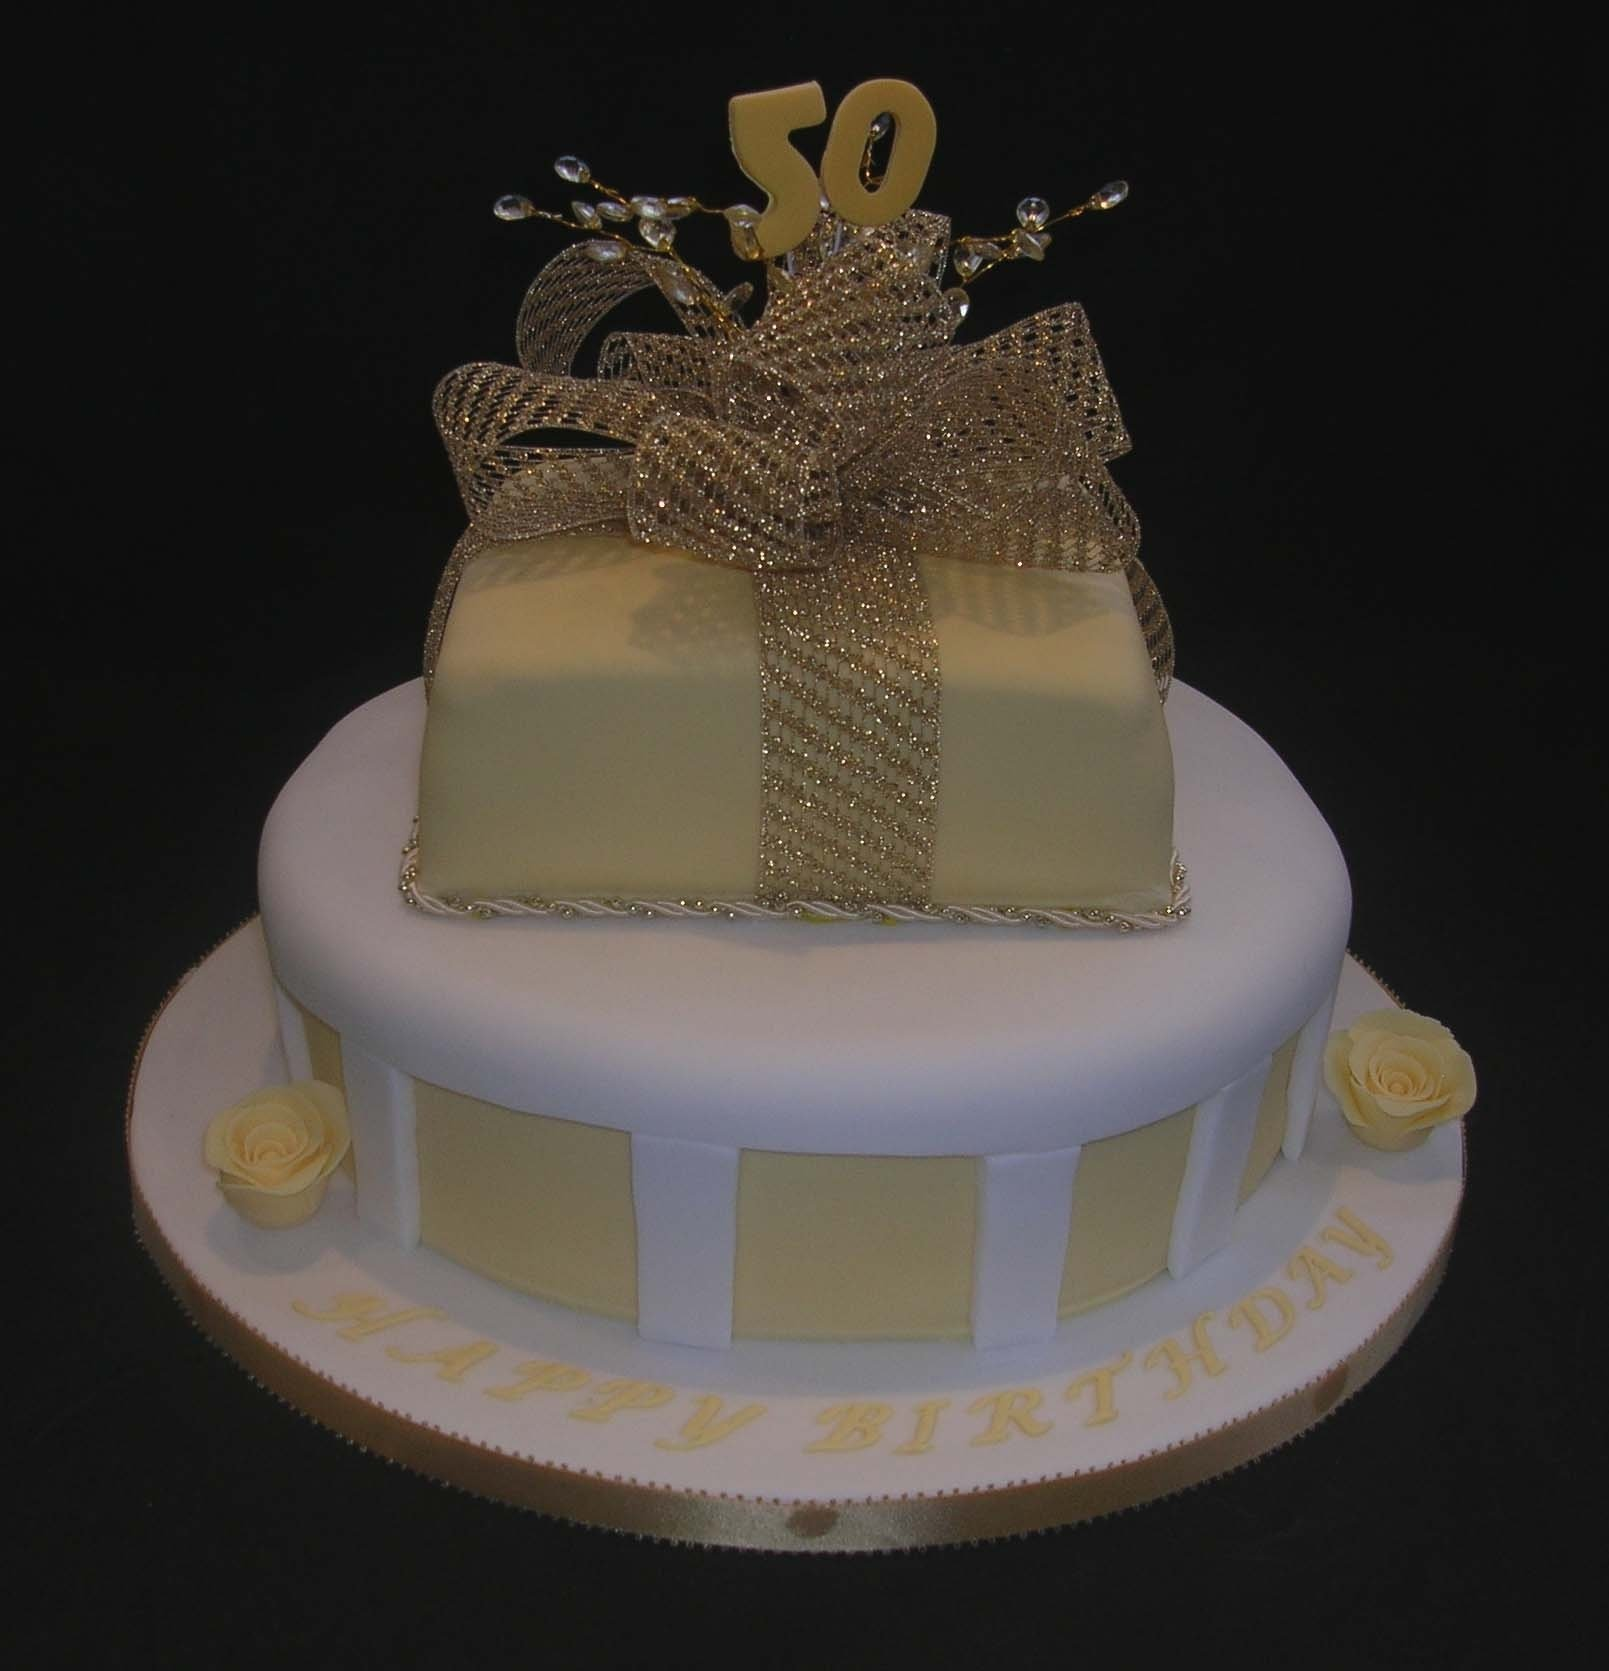 10 Awesome 50Th Birthday Cake Decorating Ideas 50th birthday cake decorating ideas walah walah 2020